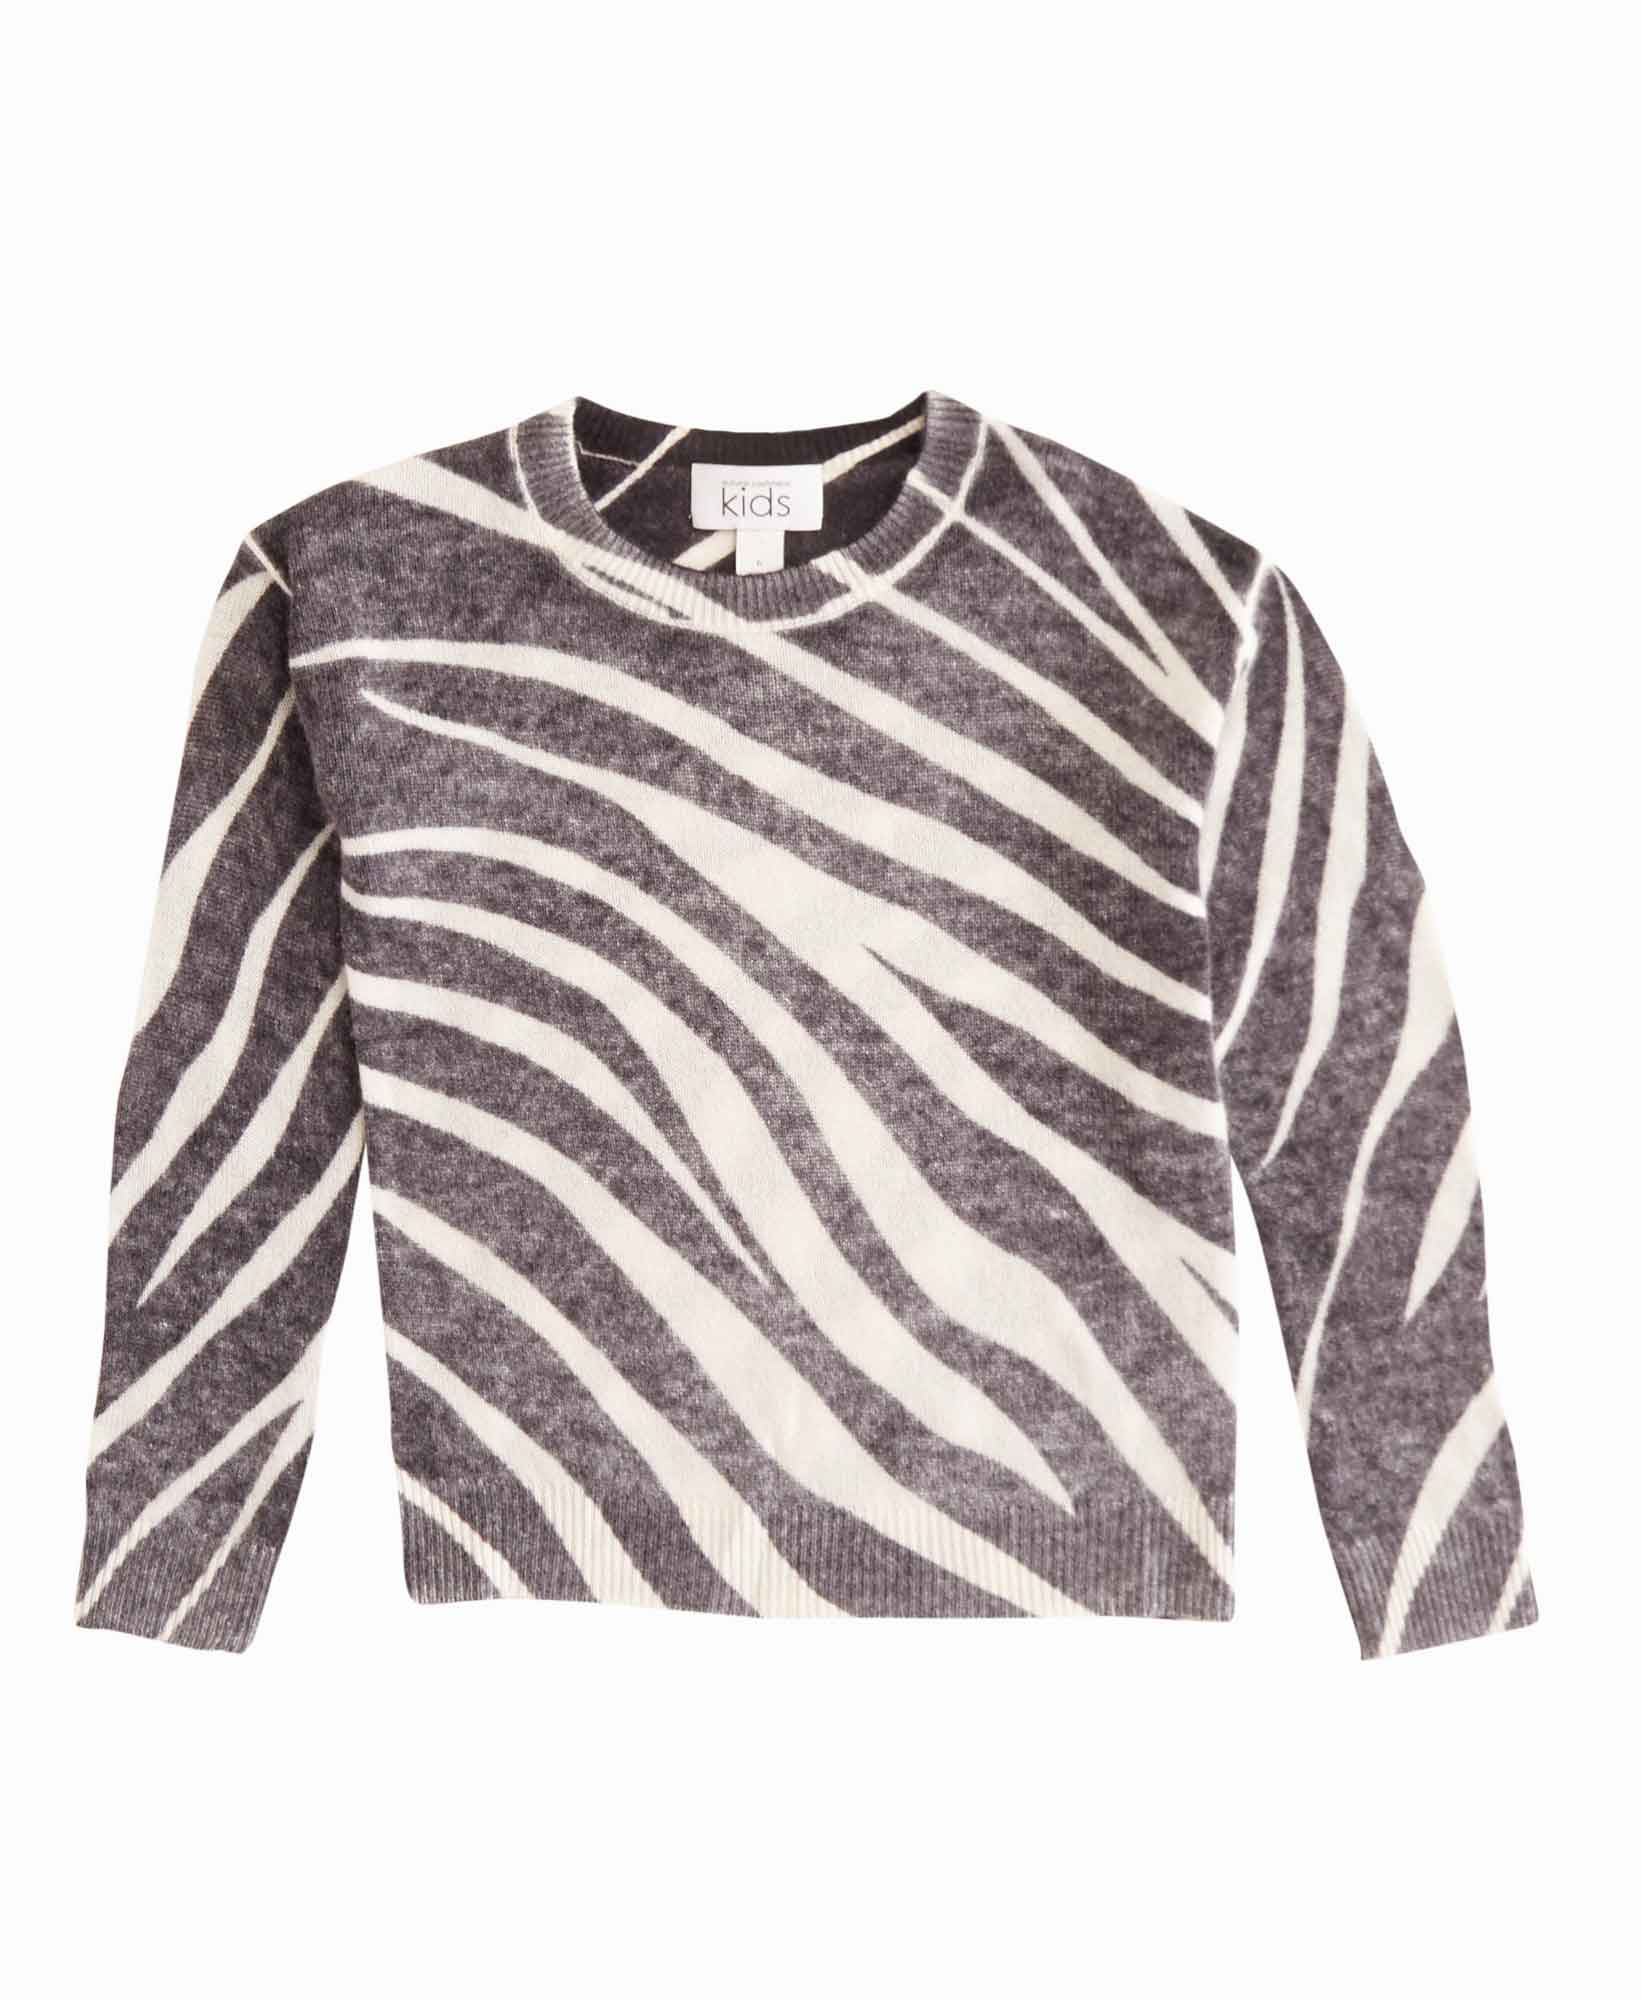 Autumn Cashmere Zebra Stripe Sweater